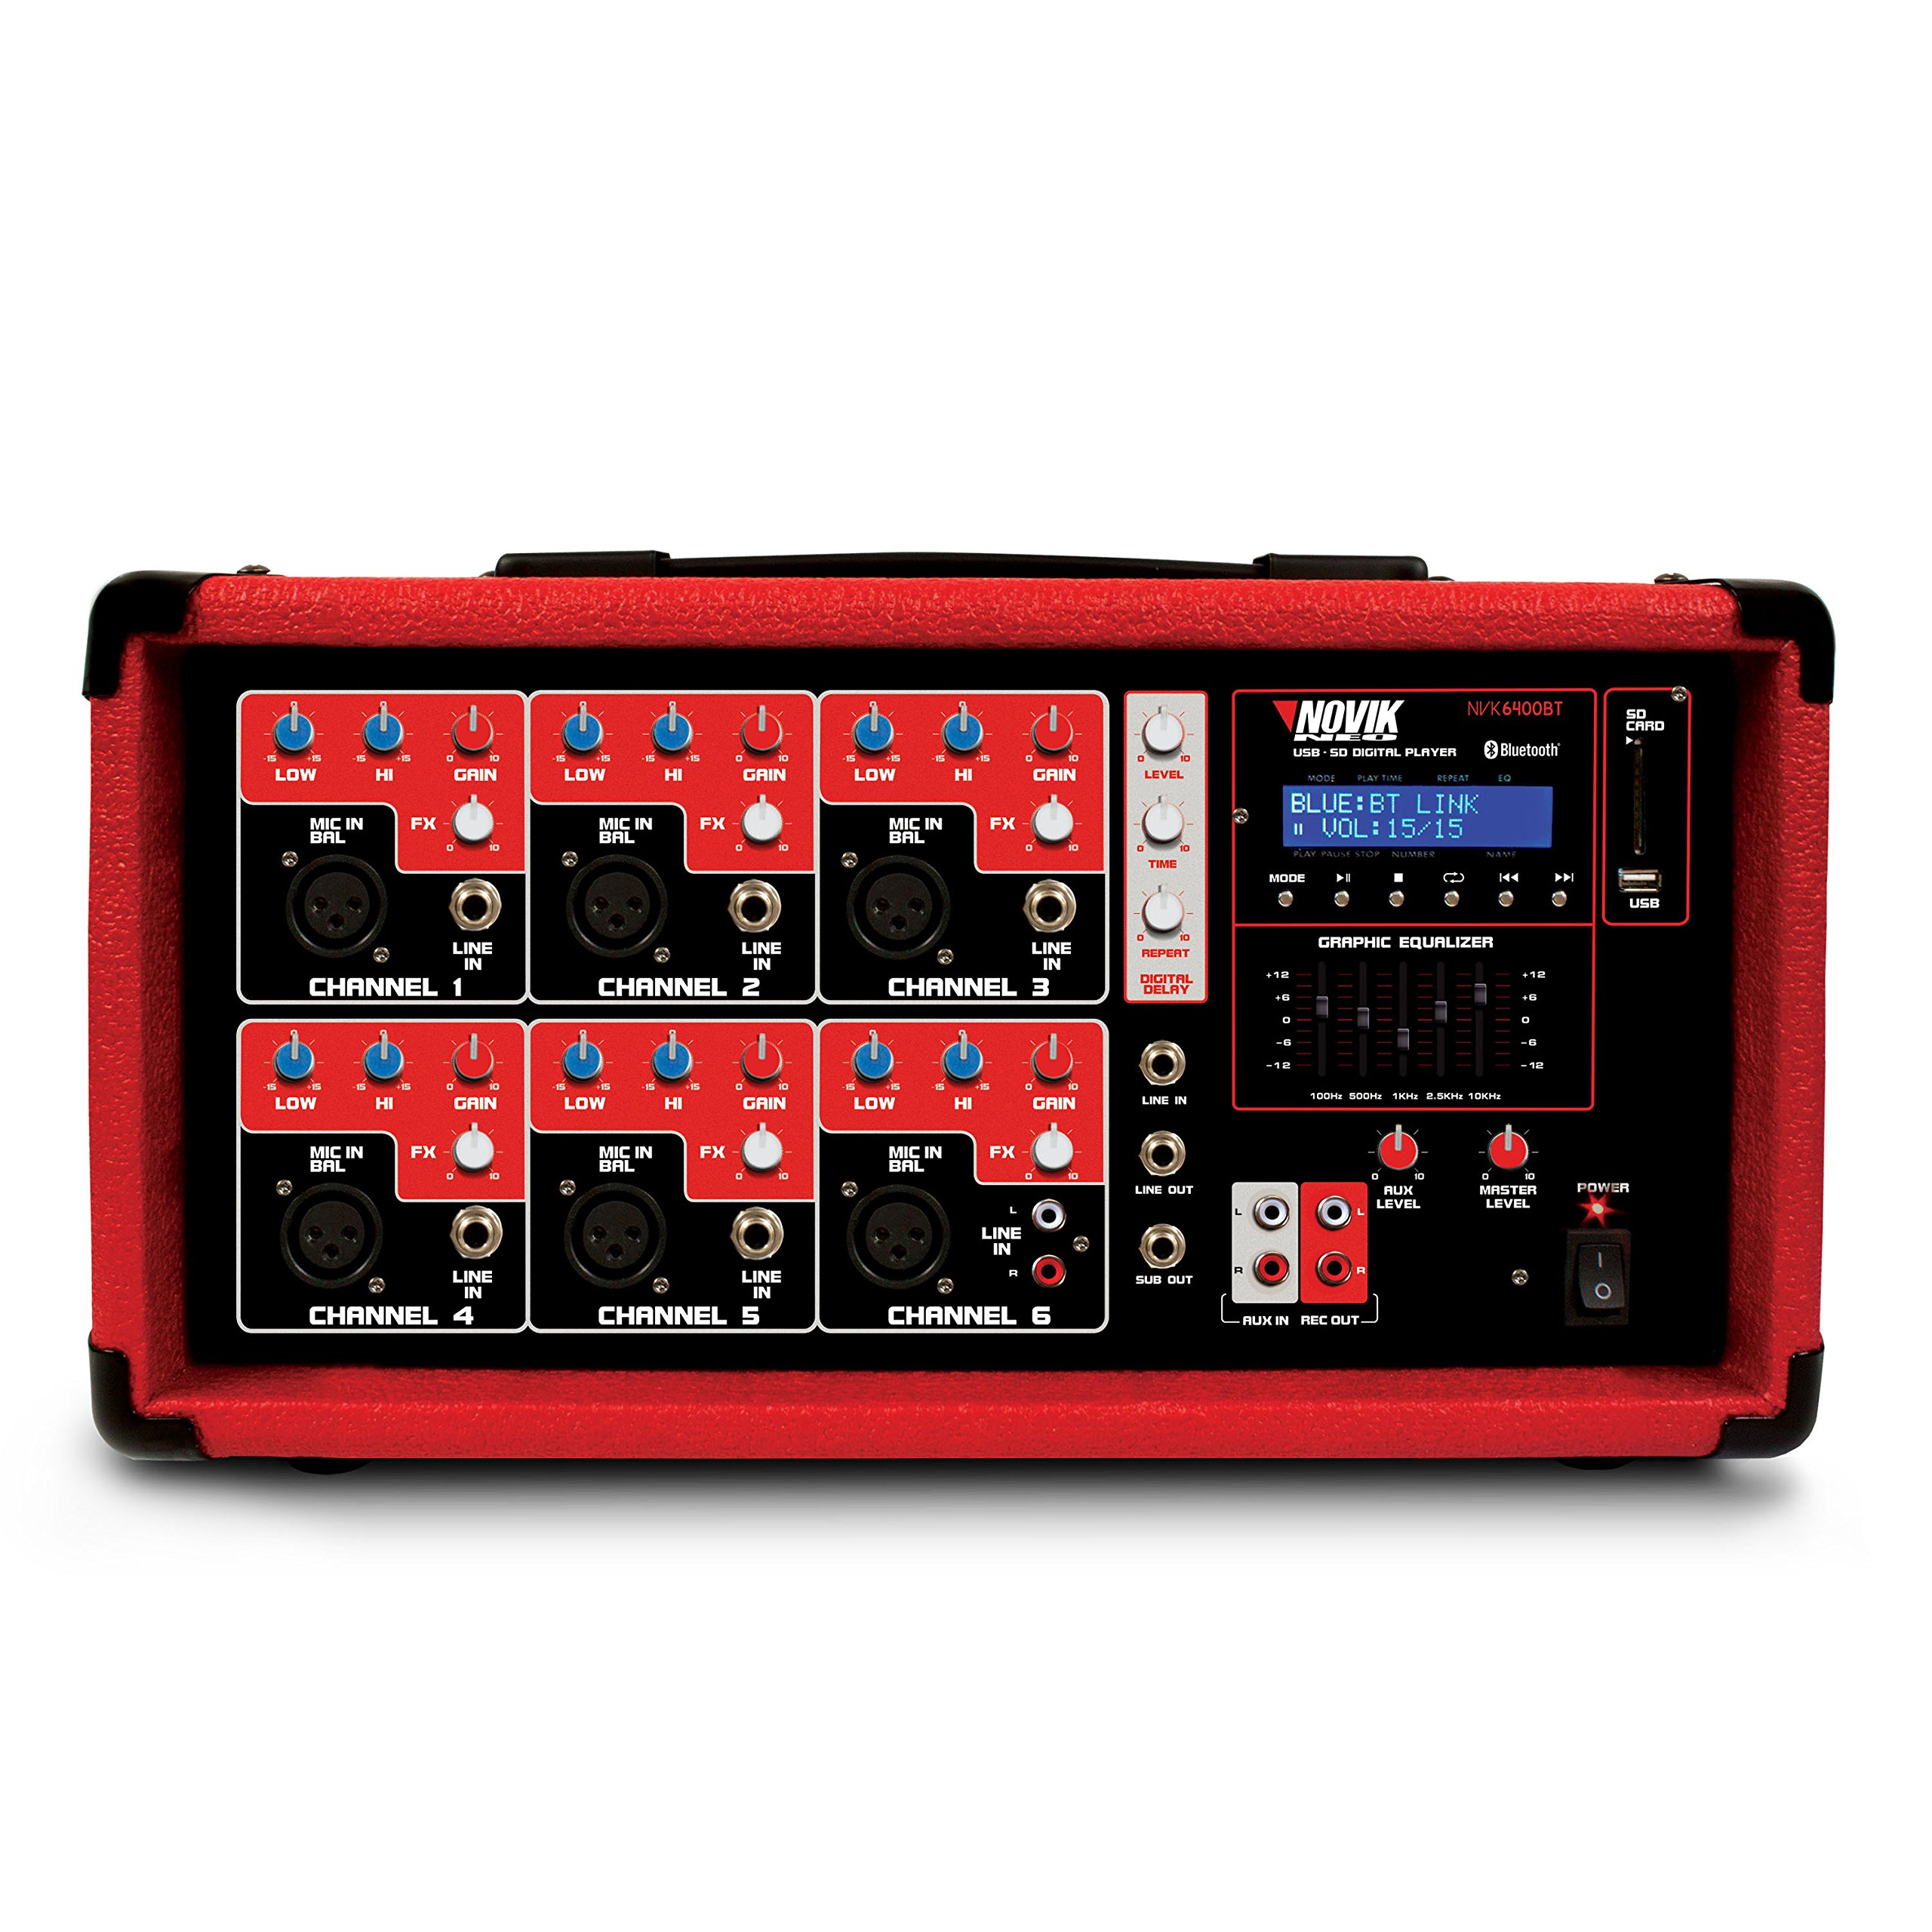 NOVIK NEO MIXER NVK 6400-BT | 6 Channel Powered Mixer Bluetooth and MP3 Player With USB and SD Slot and Remmote Control